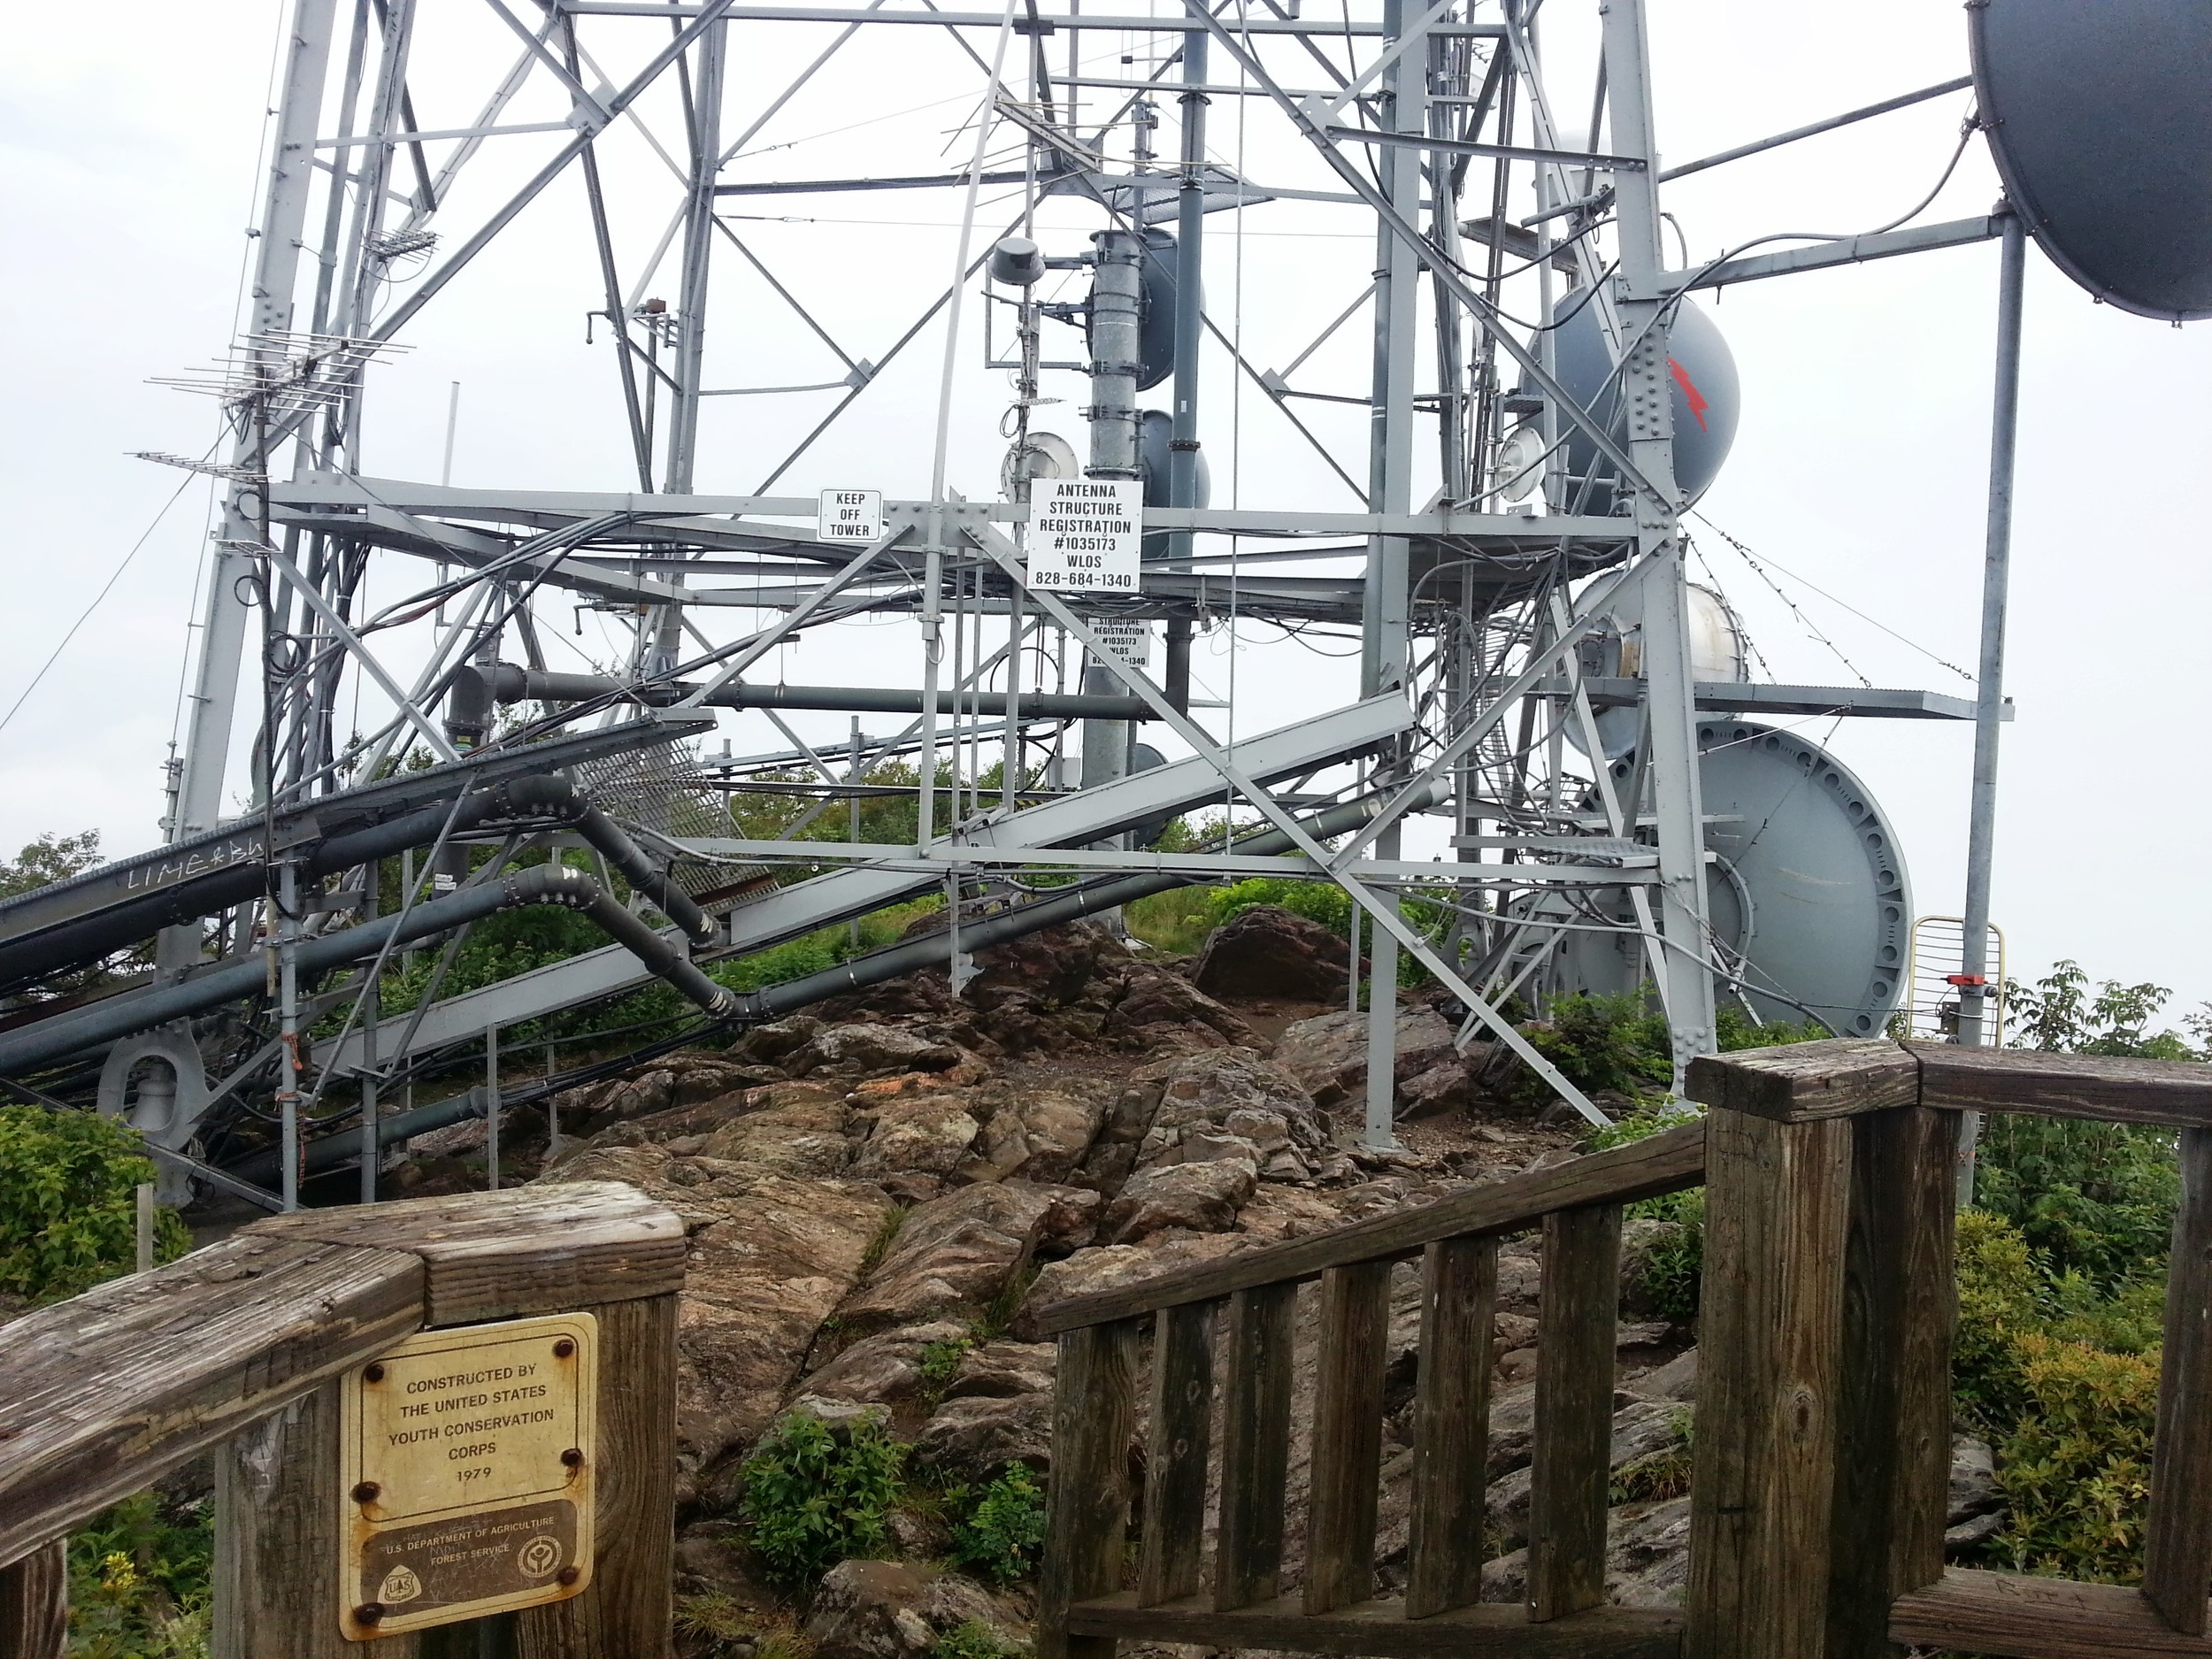 The observation deck and tower at the top of Mt. Pisgah